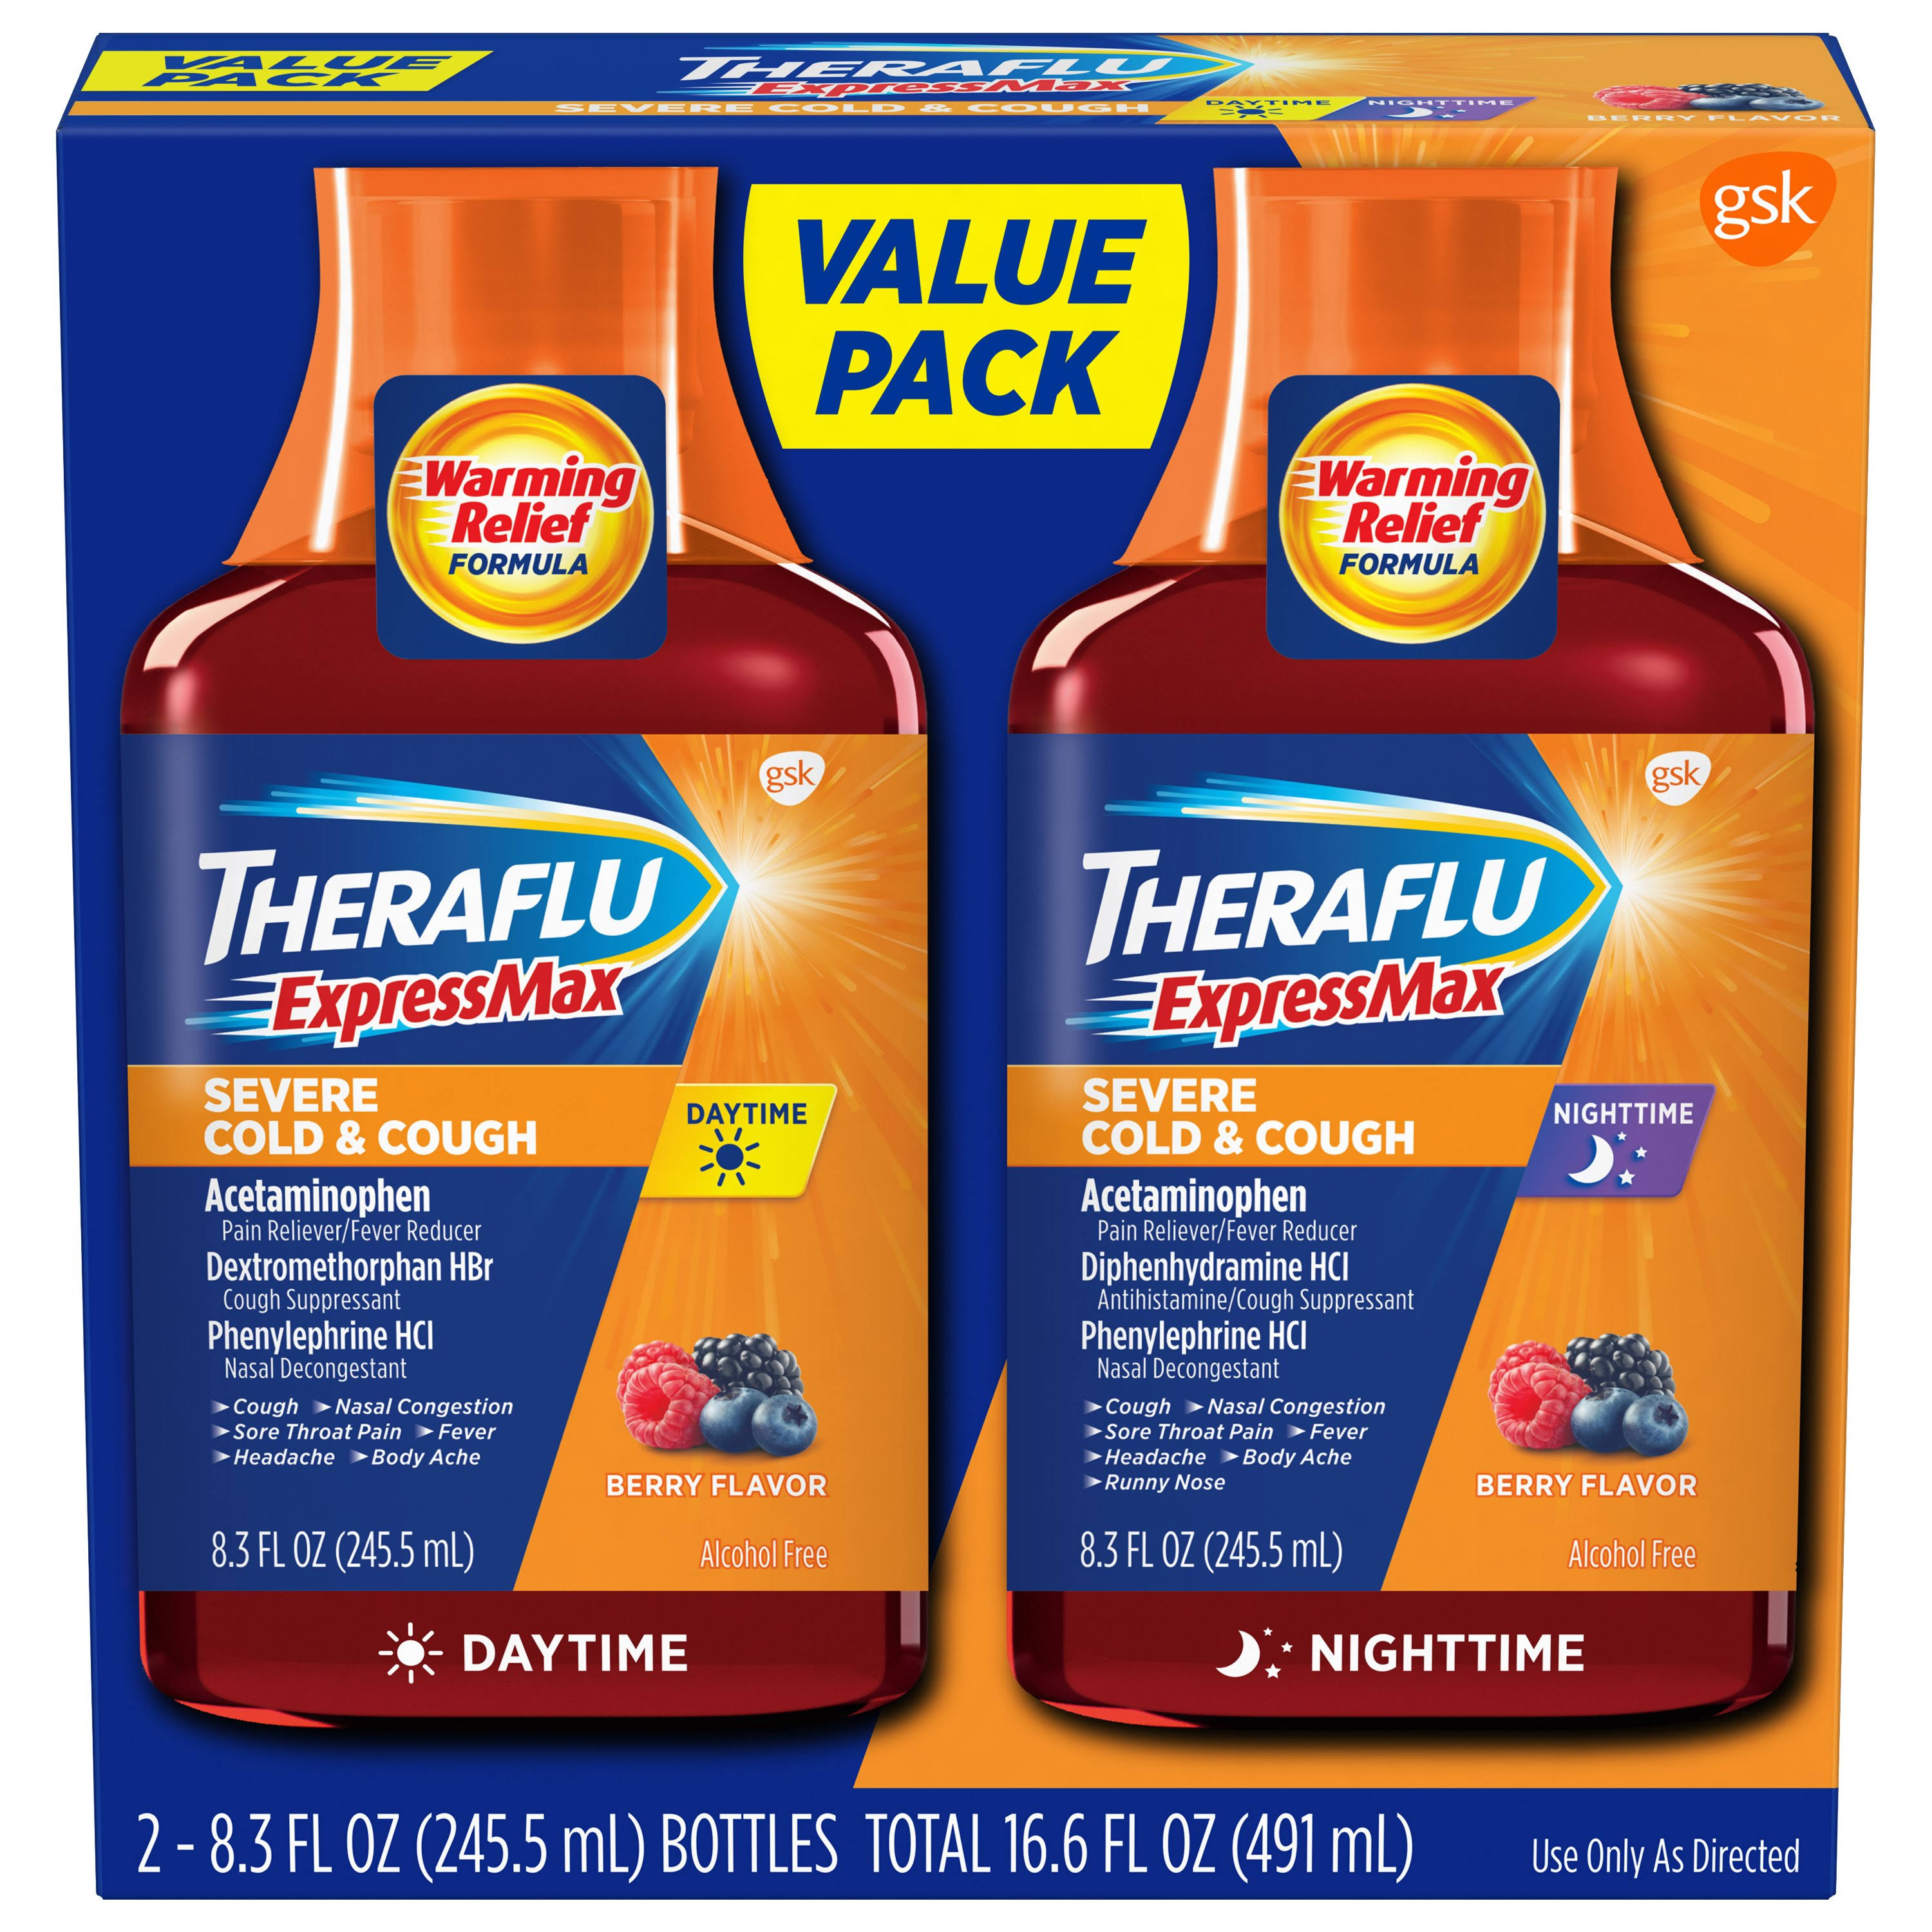 Theraflu Daytime Nighttime Severe Cold & Cough Liquid Relief Value Pack - Berry, 2 Bottles, 245.5ml